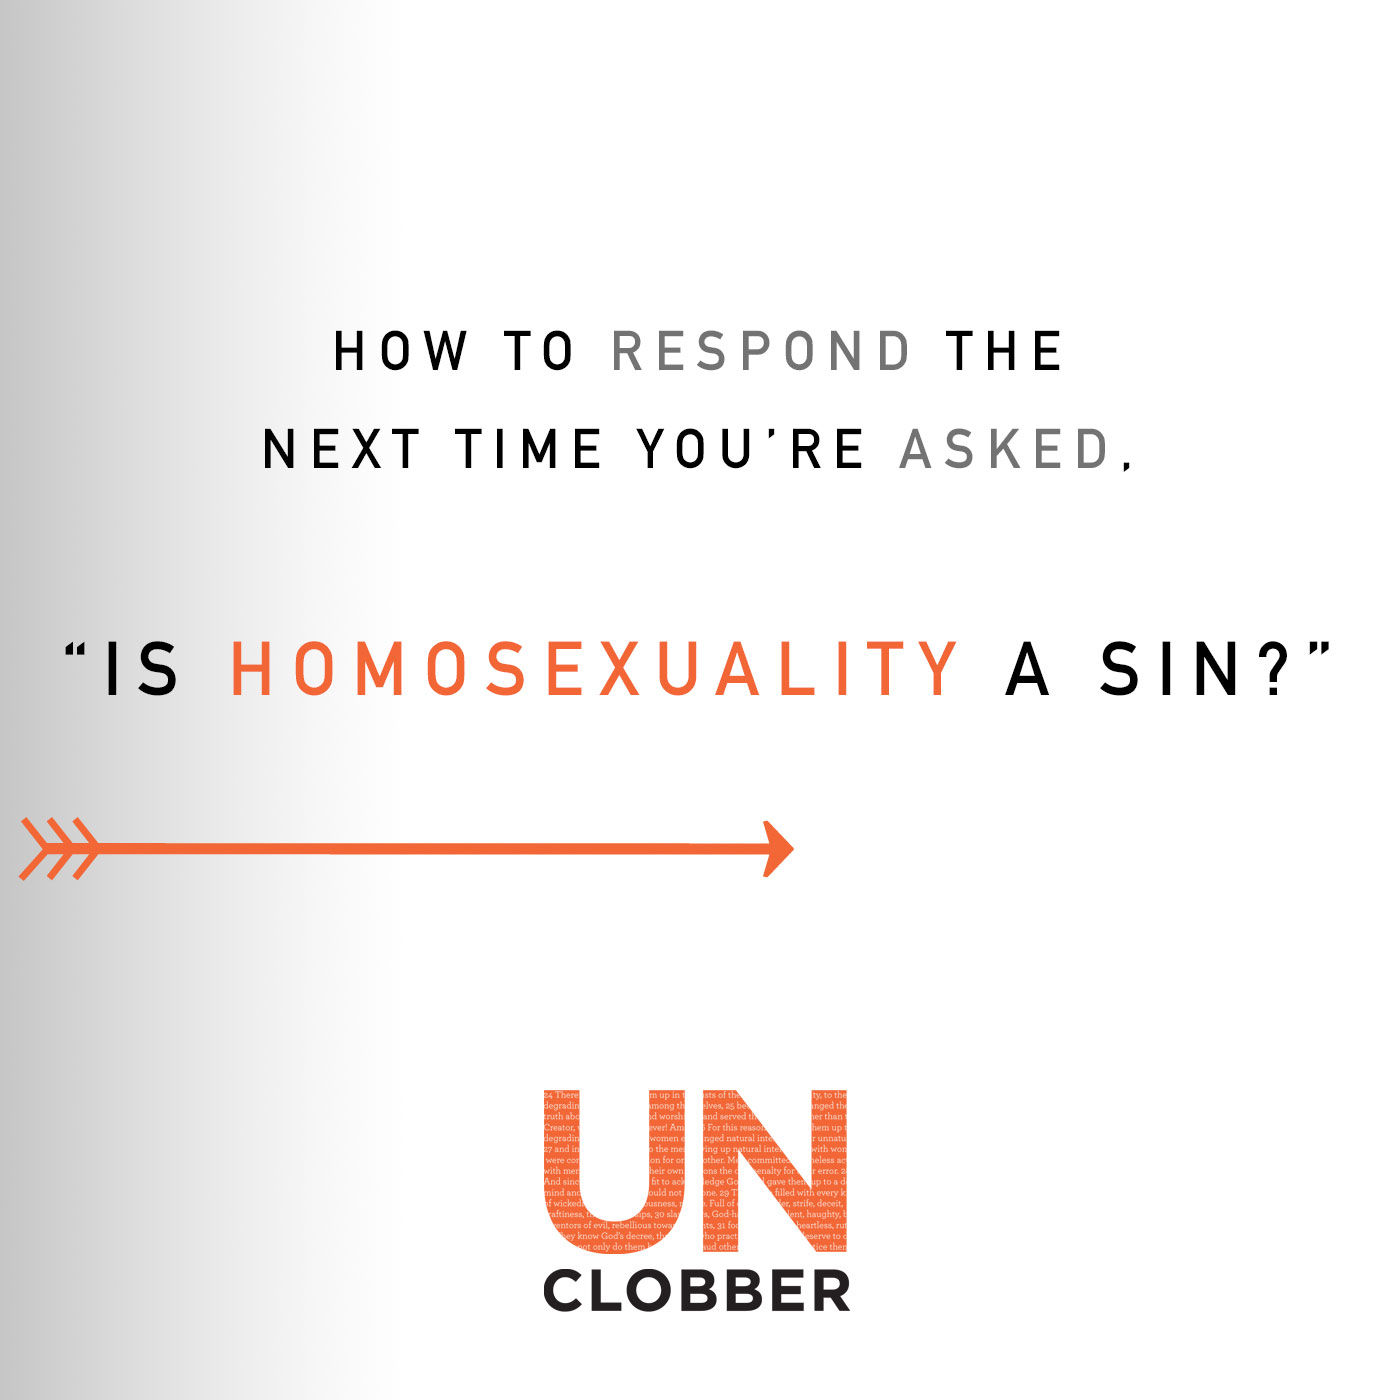 is homosexuality a sin unclobber